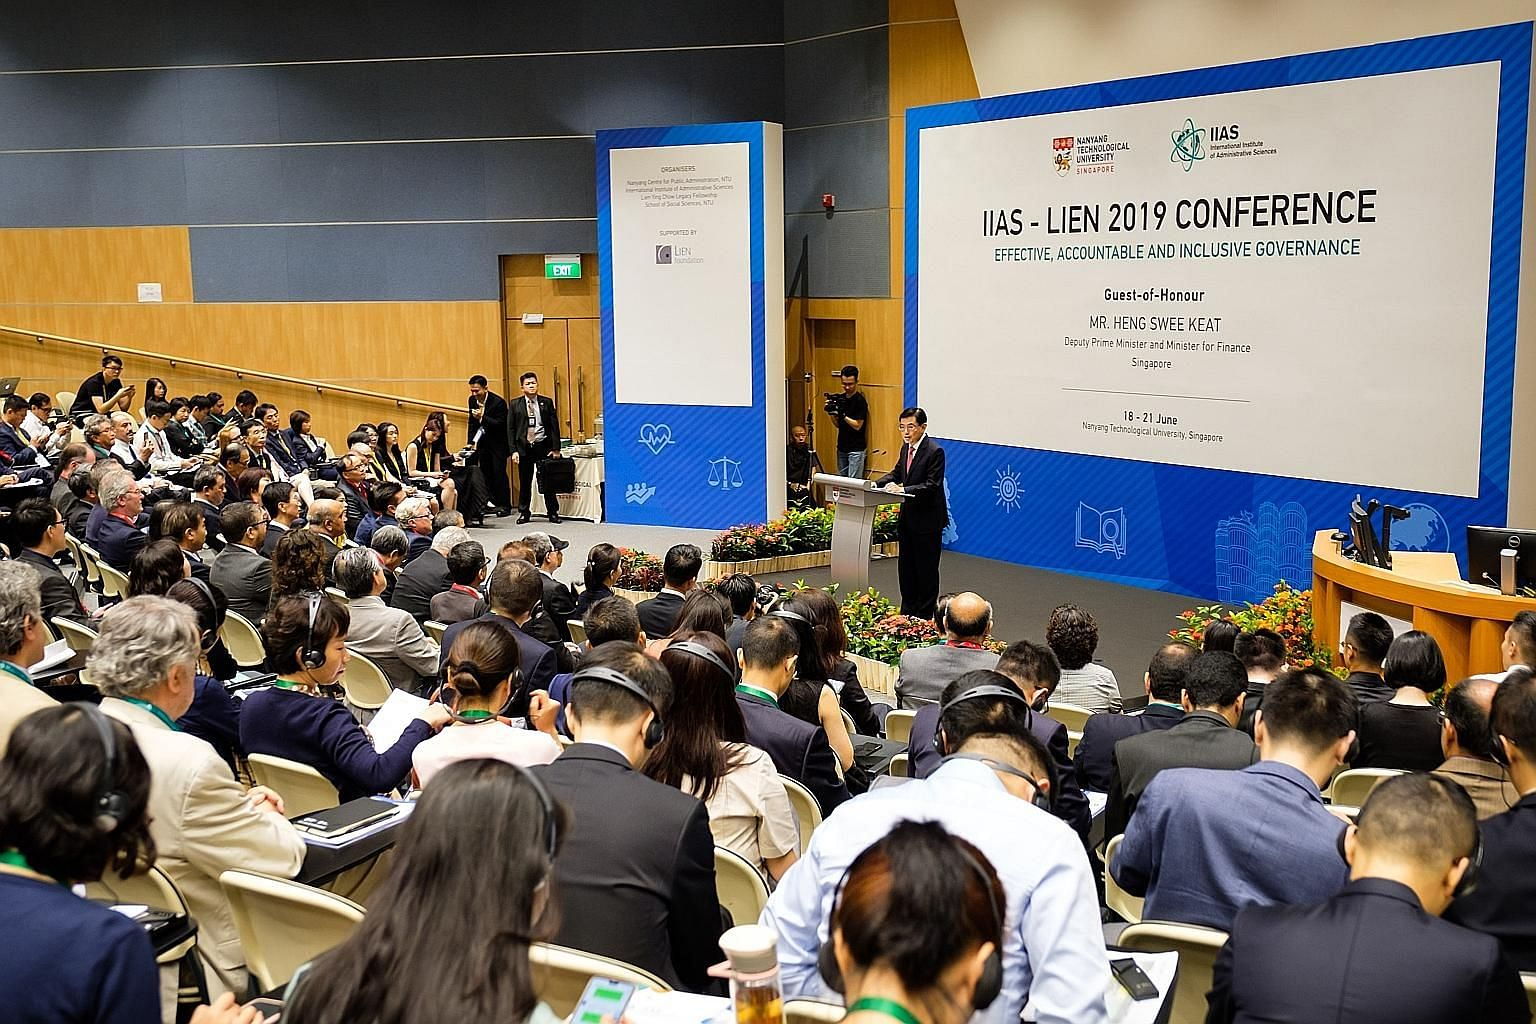 Deputy Prime Minister and Minister for Finance Heng Swee Keat delivering a keynote address yesterday at the opening ceremony of the IIAS-Lien 2019 Conference held at the Nanyang Technological University, where he spoke about the three key principles